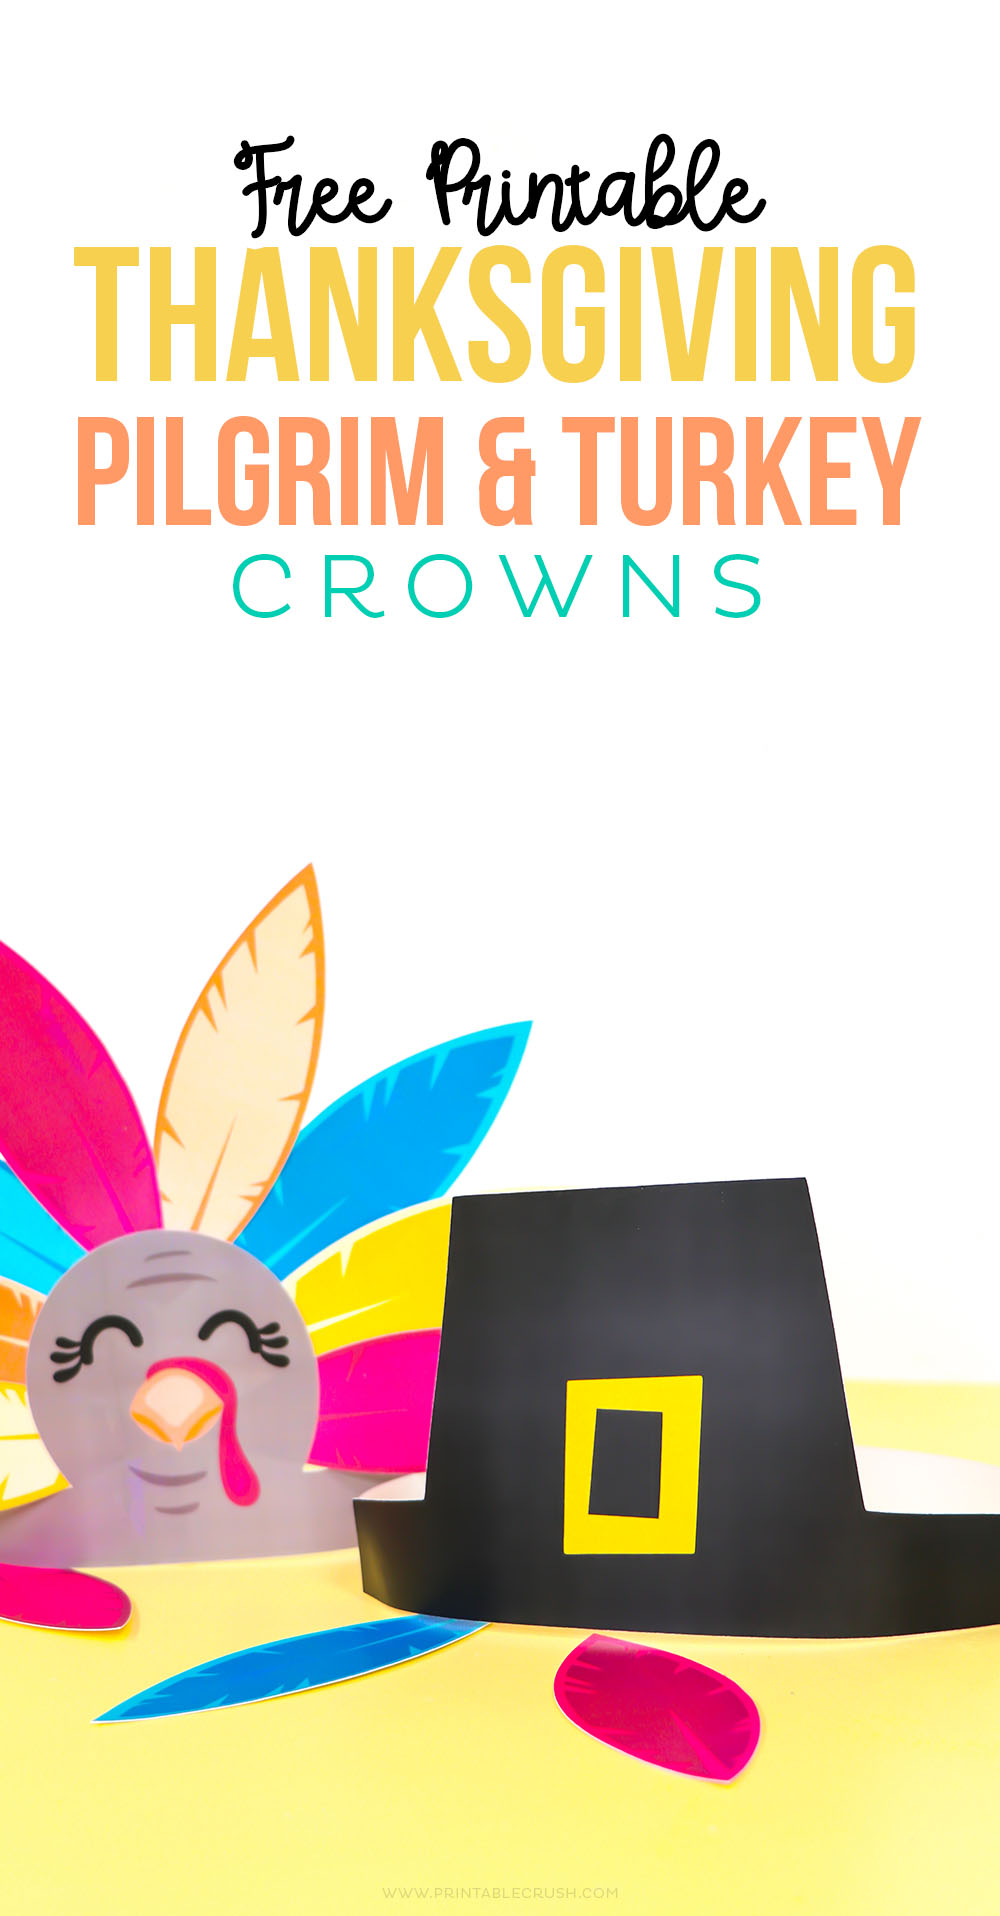 FREE Thanksgiving Pilgrim and Turkey Crown Printables